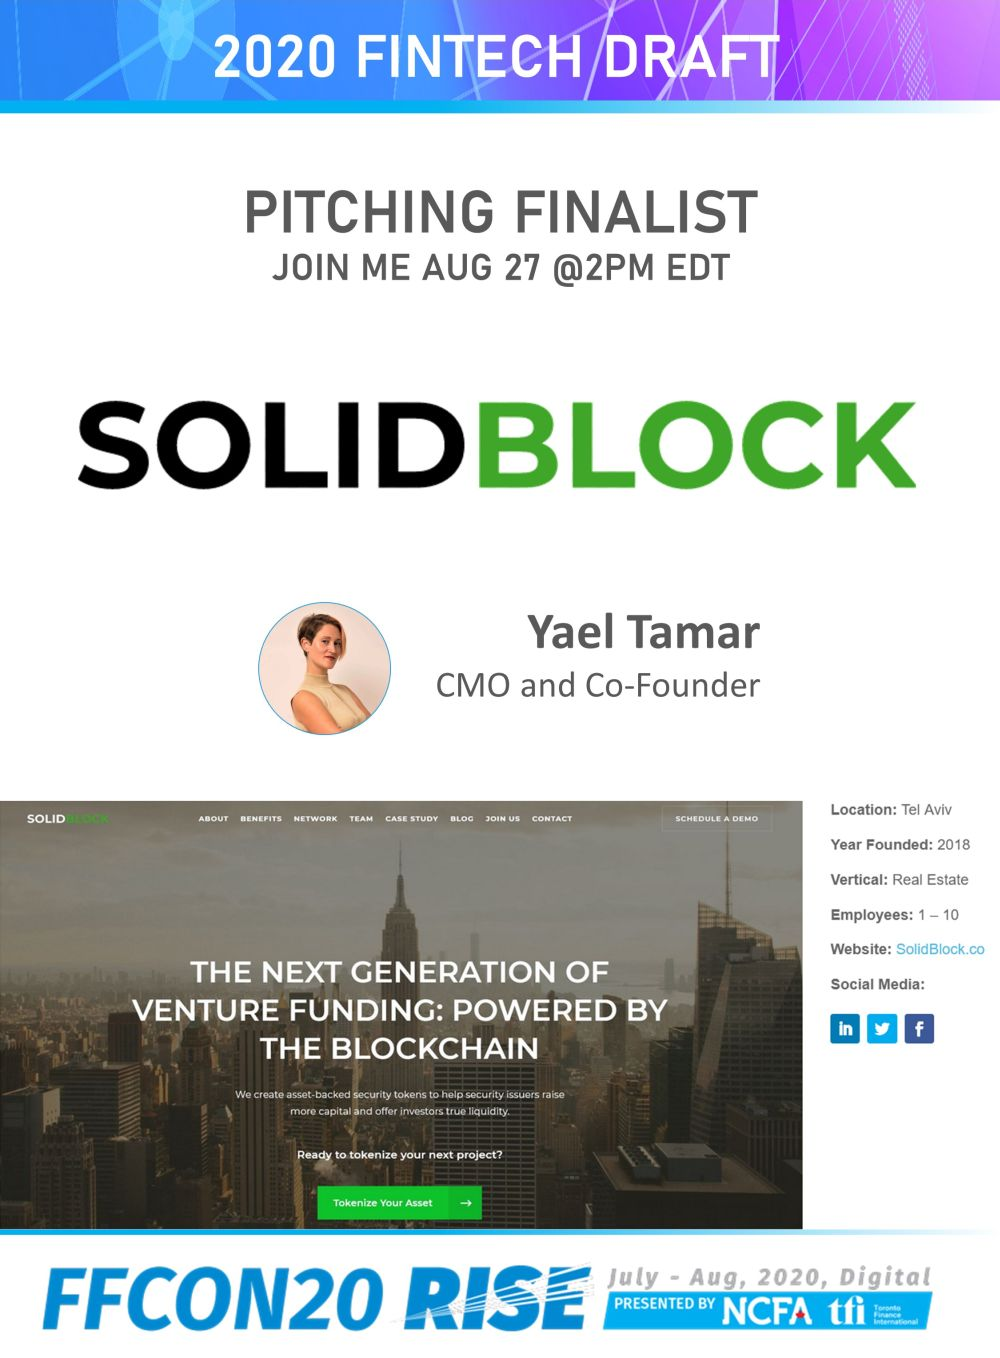 FFCON20 Pitching Finalist card - SolidBlock resize